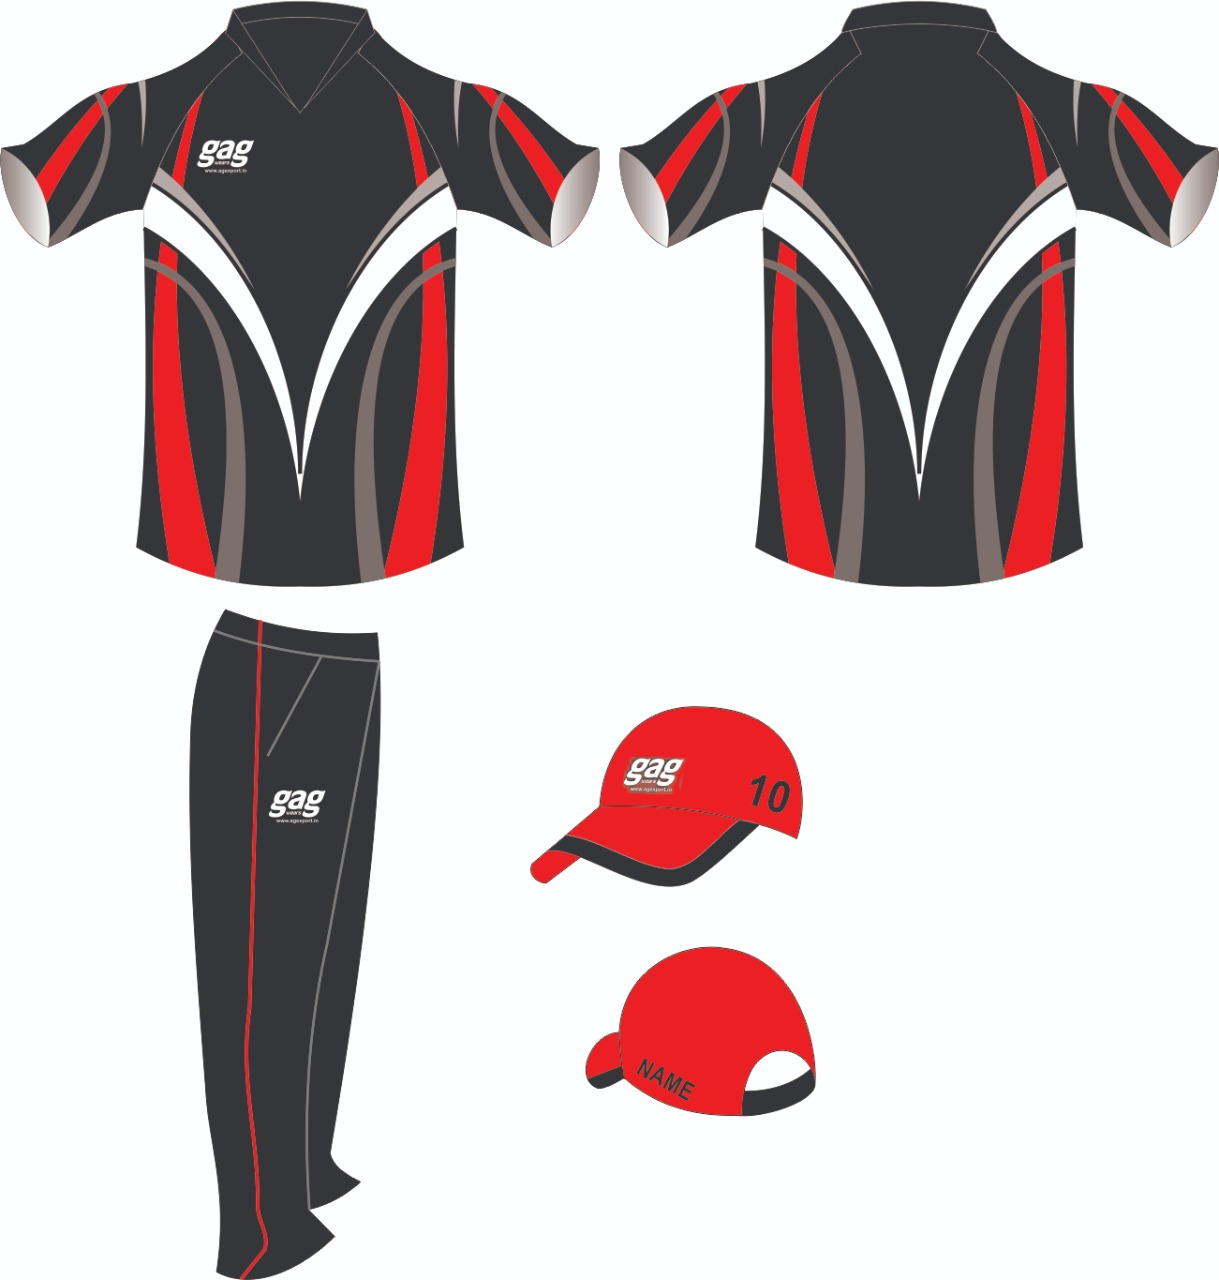 Cricket Clothing Manufacturers in Jalandhar in Bangladesh